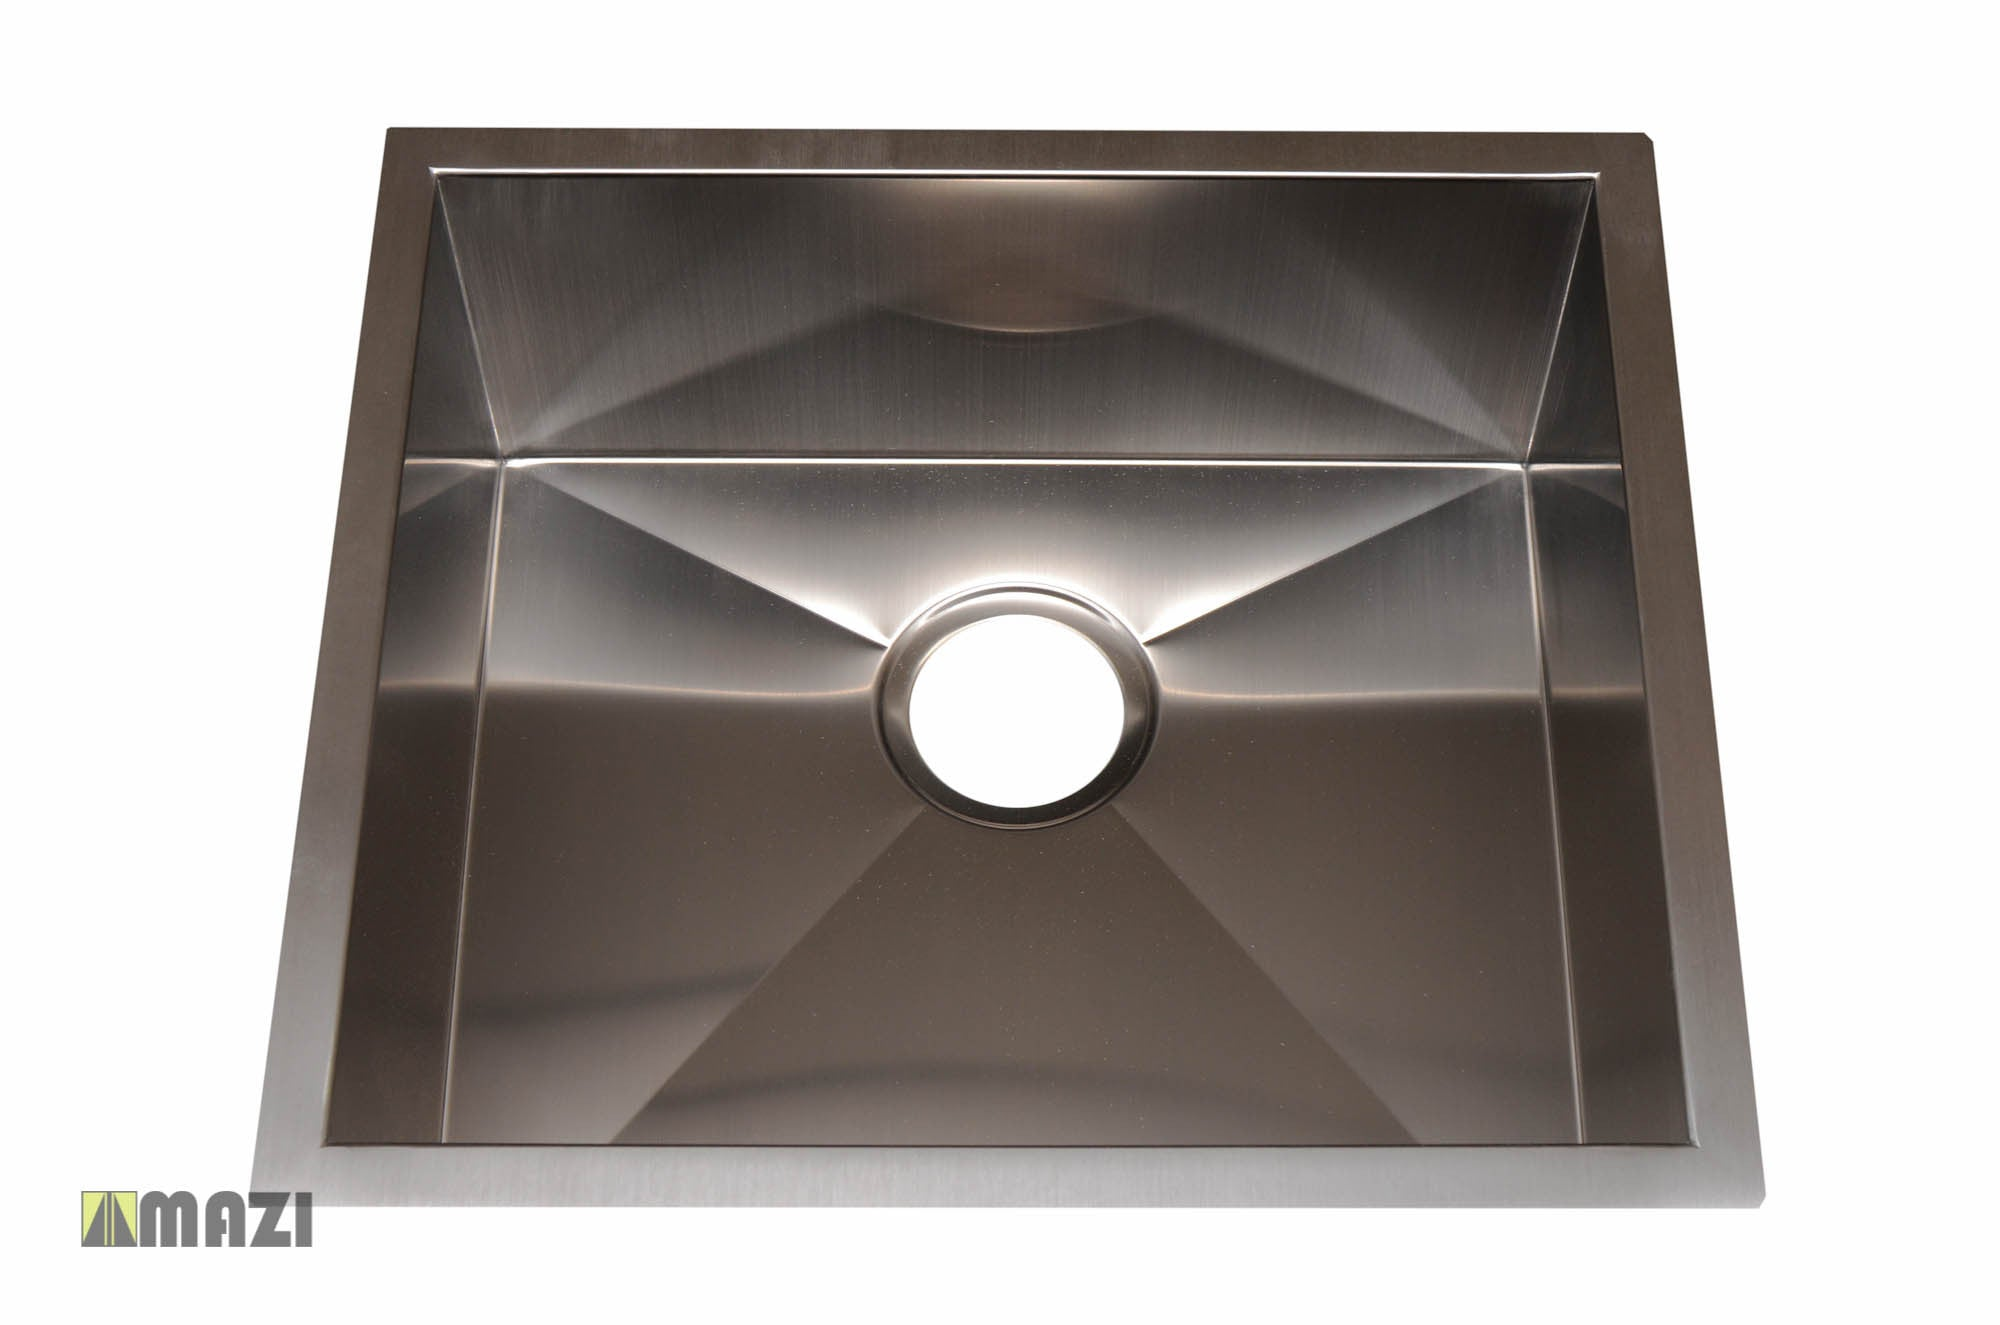 Stainless steel handmade kitchen sink hbb1820 tap to expand